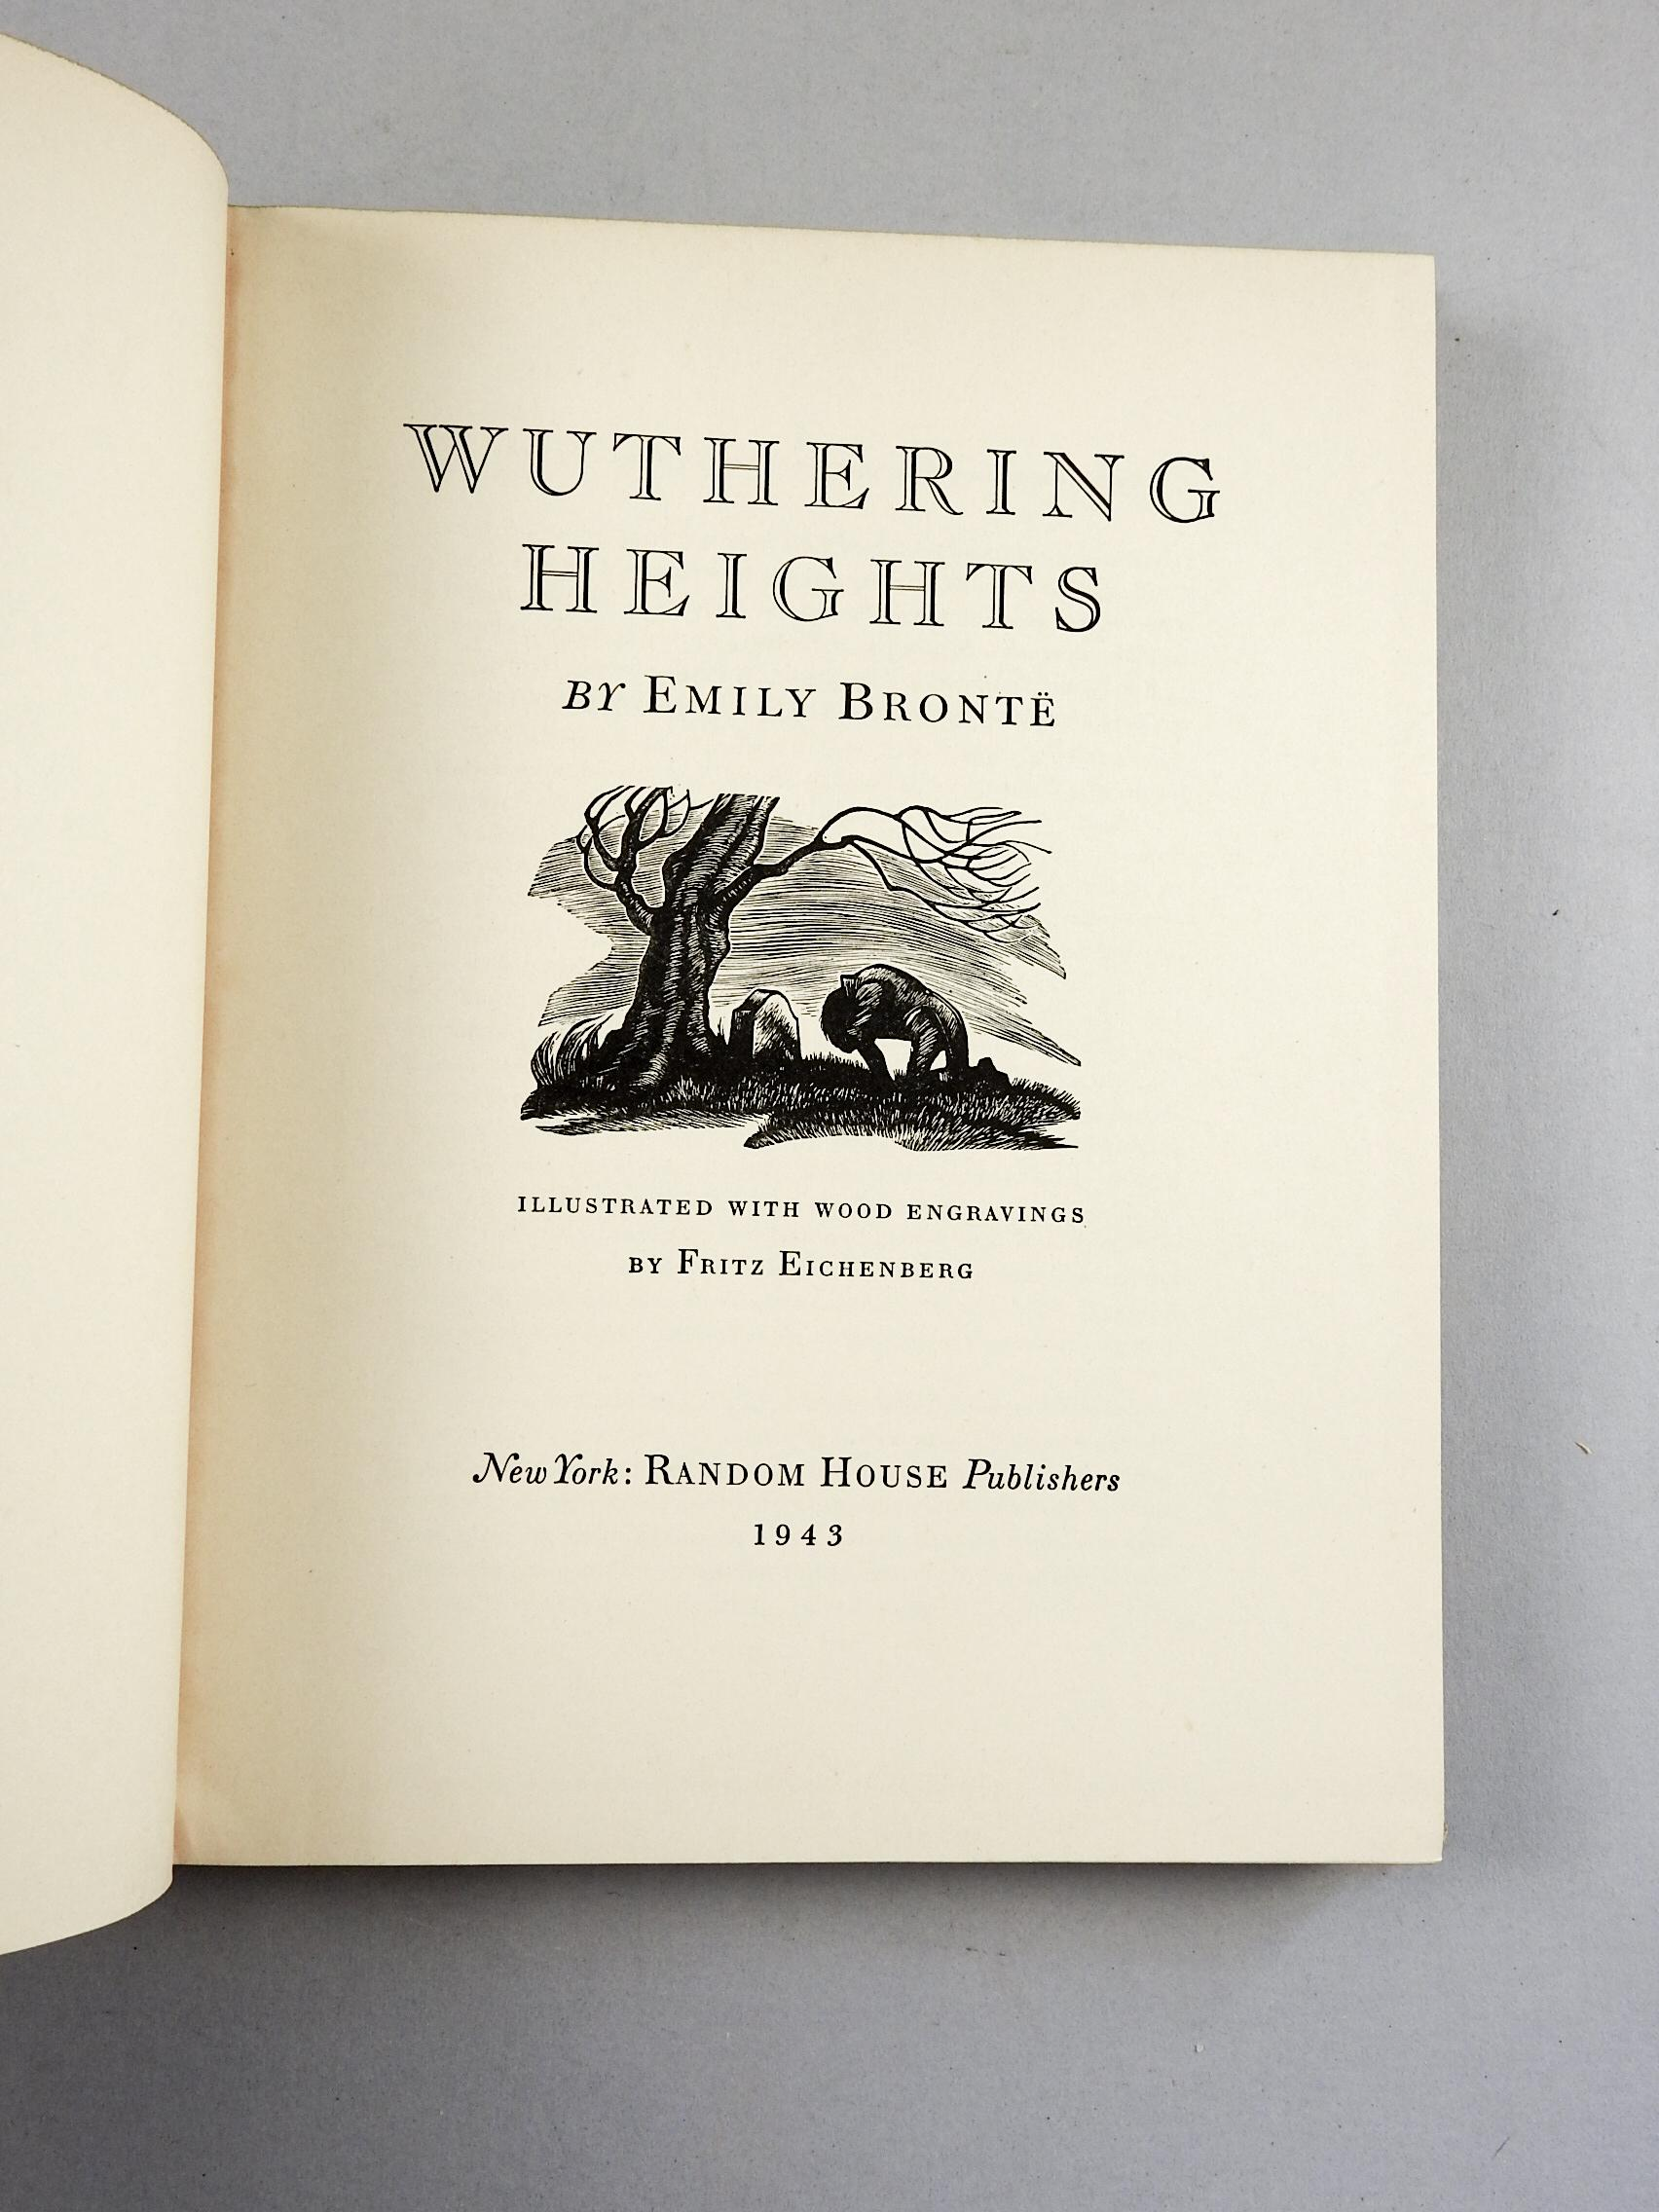 symbolism in emily brontes novel wuthering heights Get an answer for 'discuss the irony/symbolism used in emily bronte's wuthering heightsfor my lit12 class i read this book for january now it's february when my teacher finally decides it's .